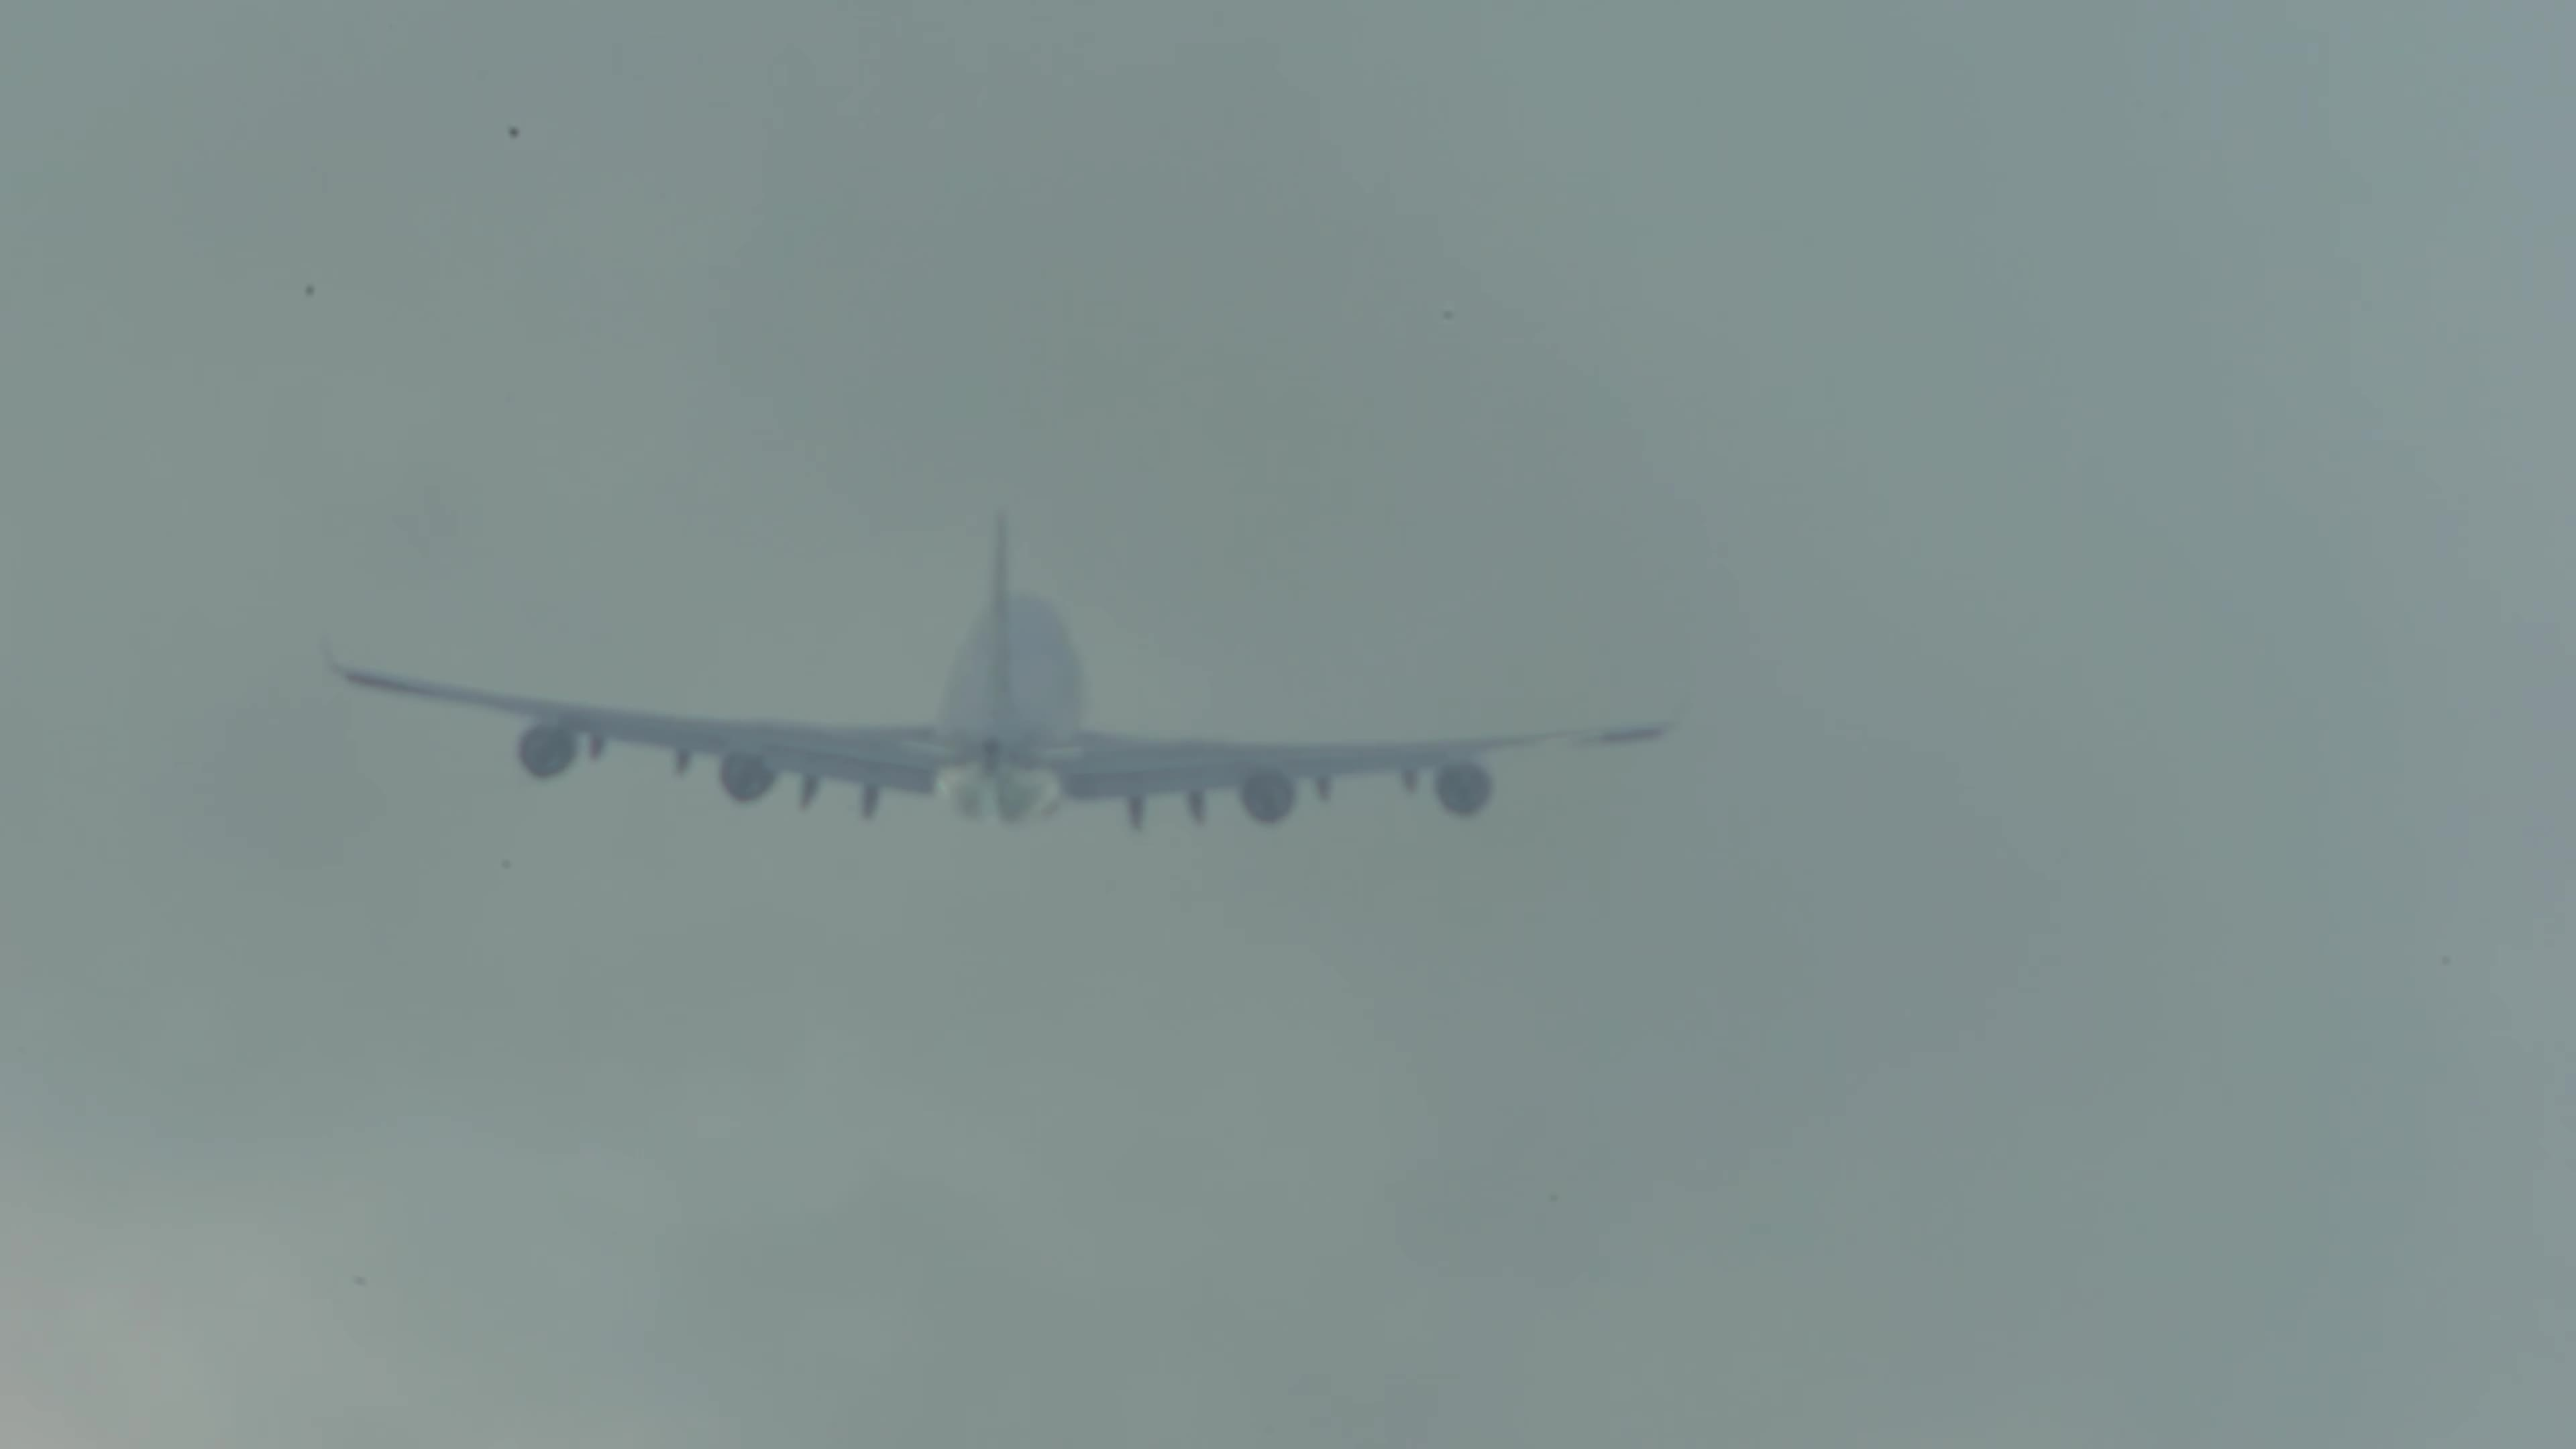 B747 CLOUD BRAKING, B747 new generation, BOEING 747 LANDING, Boeing 747 old generation, Boeing 747 reportage, Landing, Queen of the skies, arrival, landings, touchdown, The queen's spiral makes the clouds white GIFs